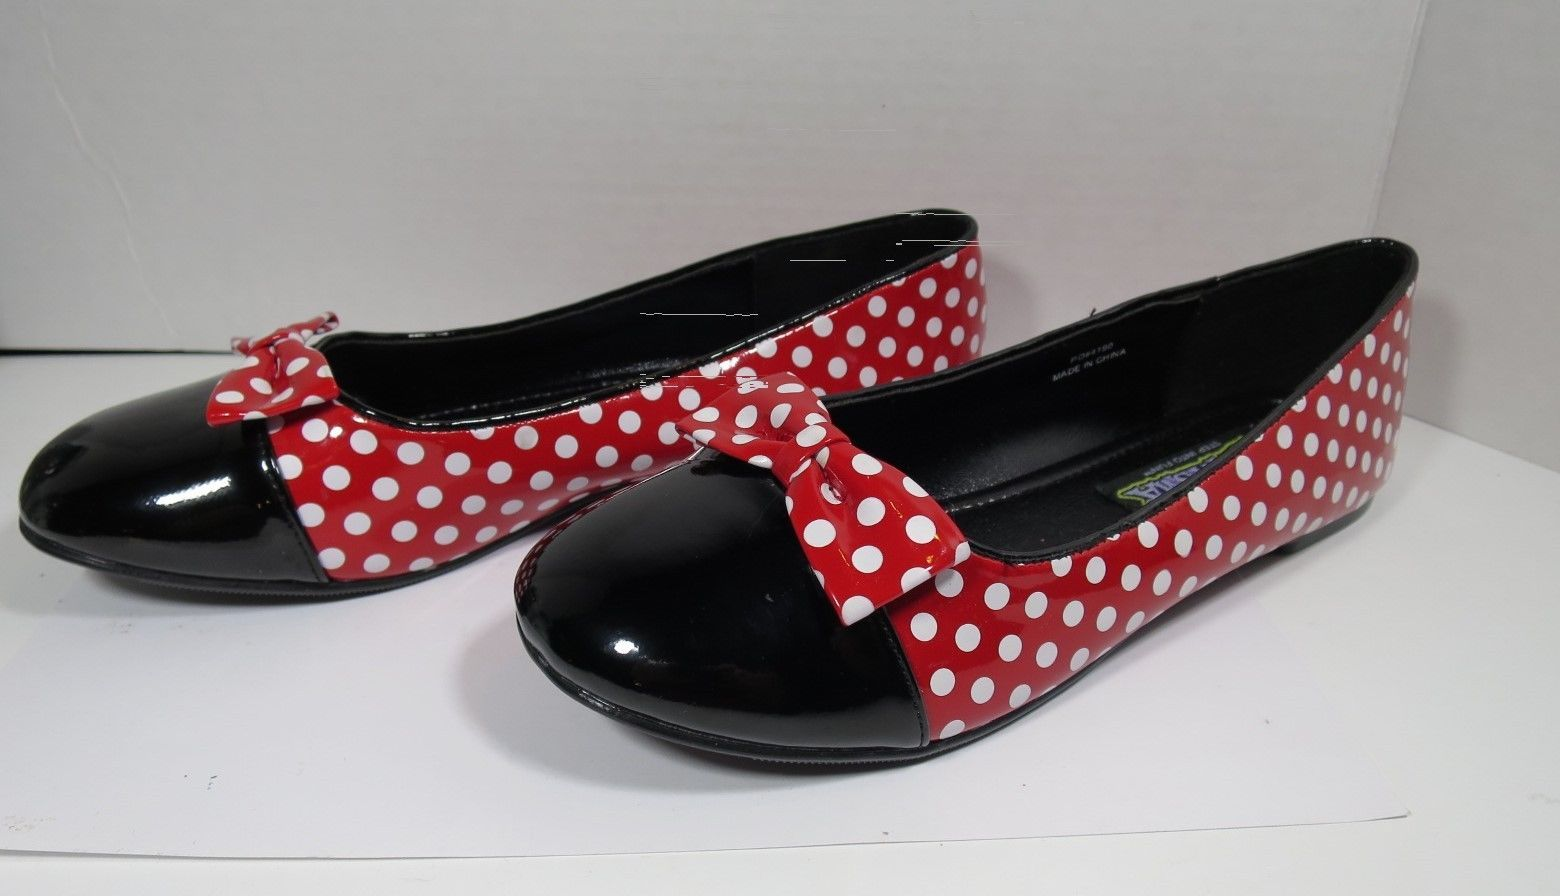 Funtasma Women MOUSE-16 Red Patent Polka Dot Flats Shoes Size 7